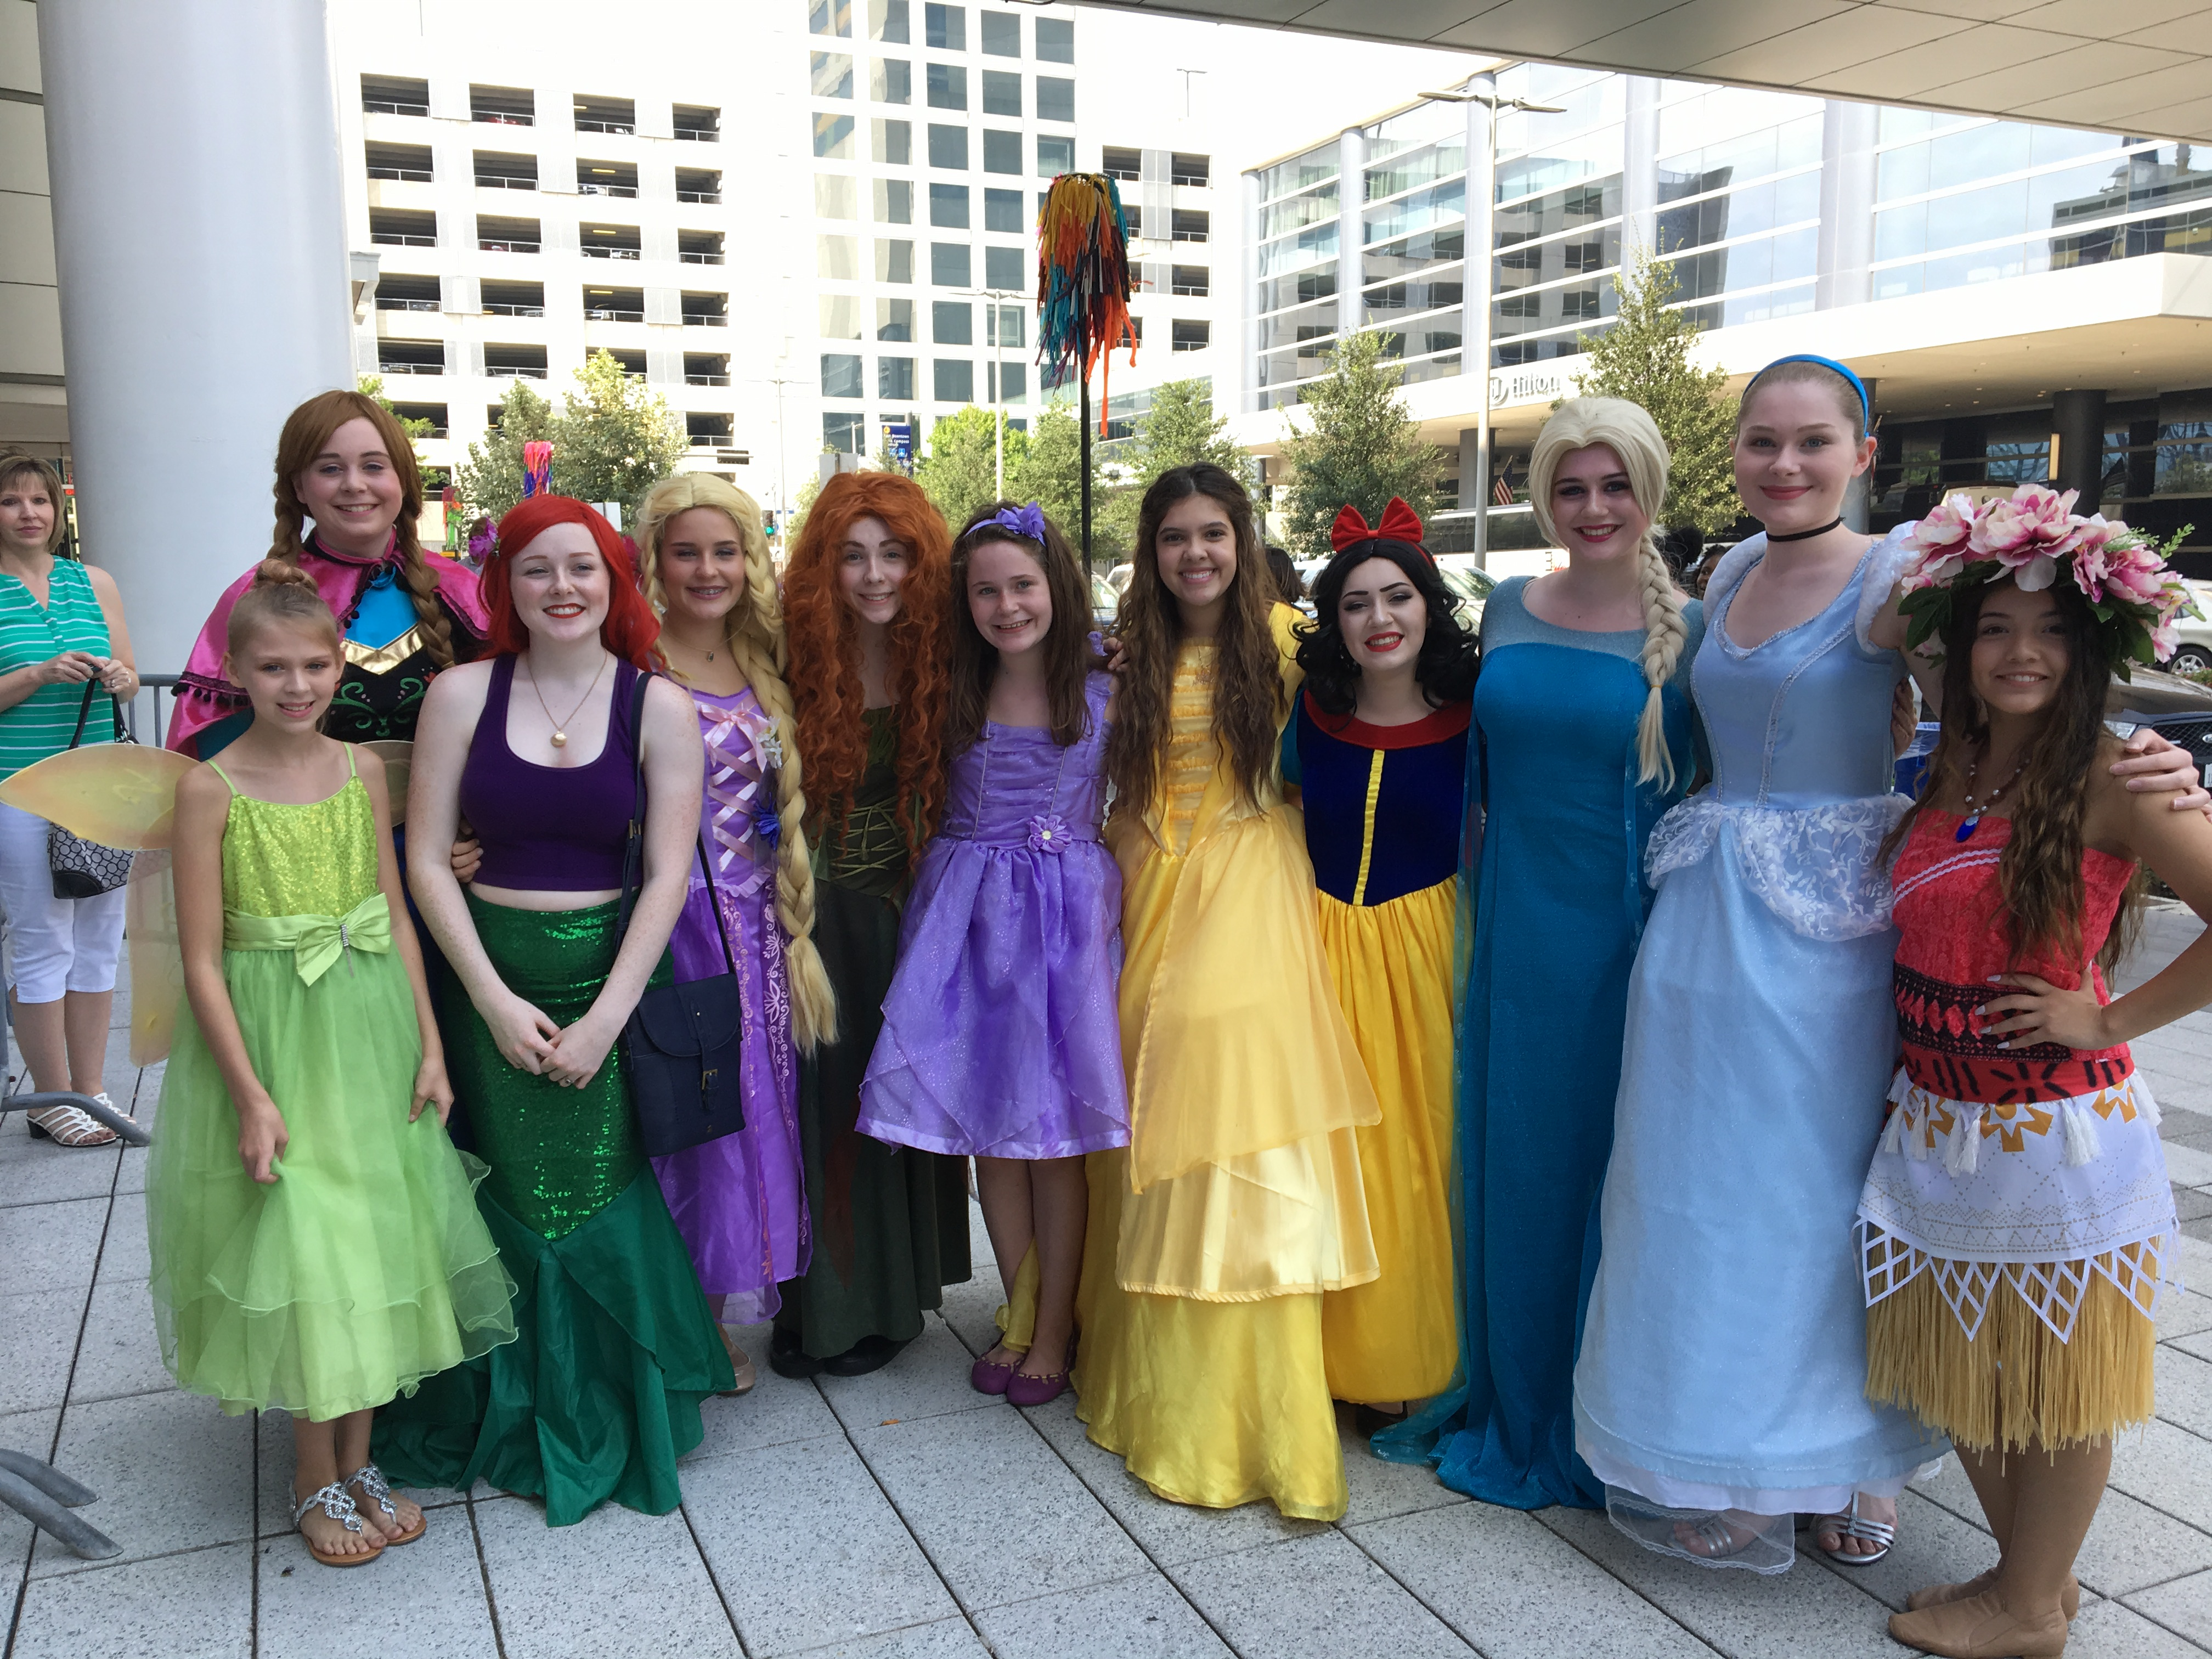 Teens with the Princess Project came to sing for kids affected by Hurricane Harvey